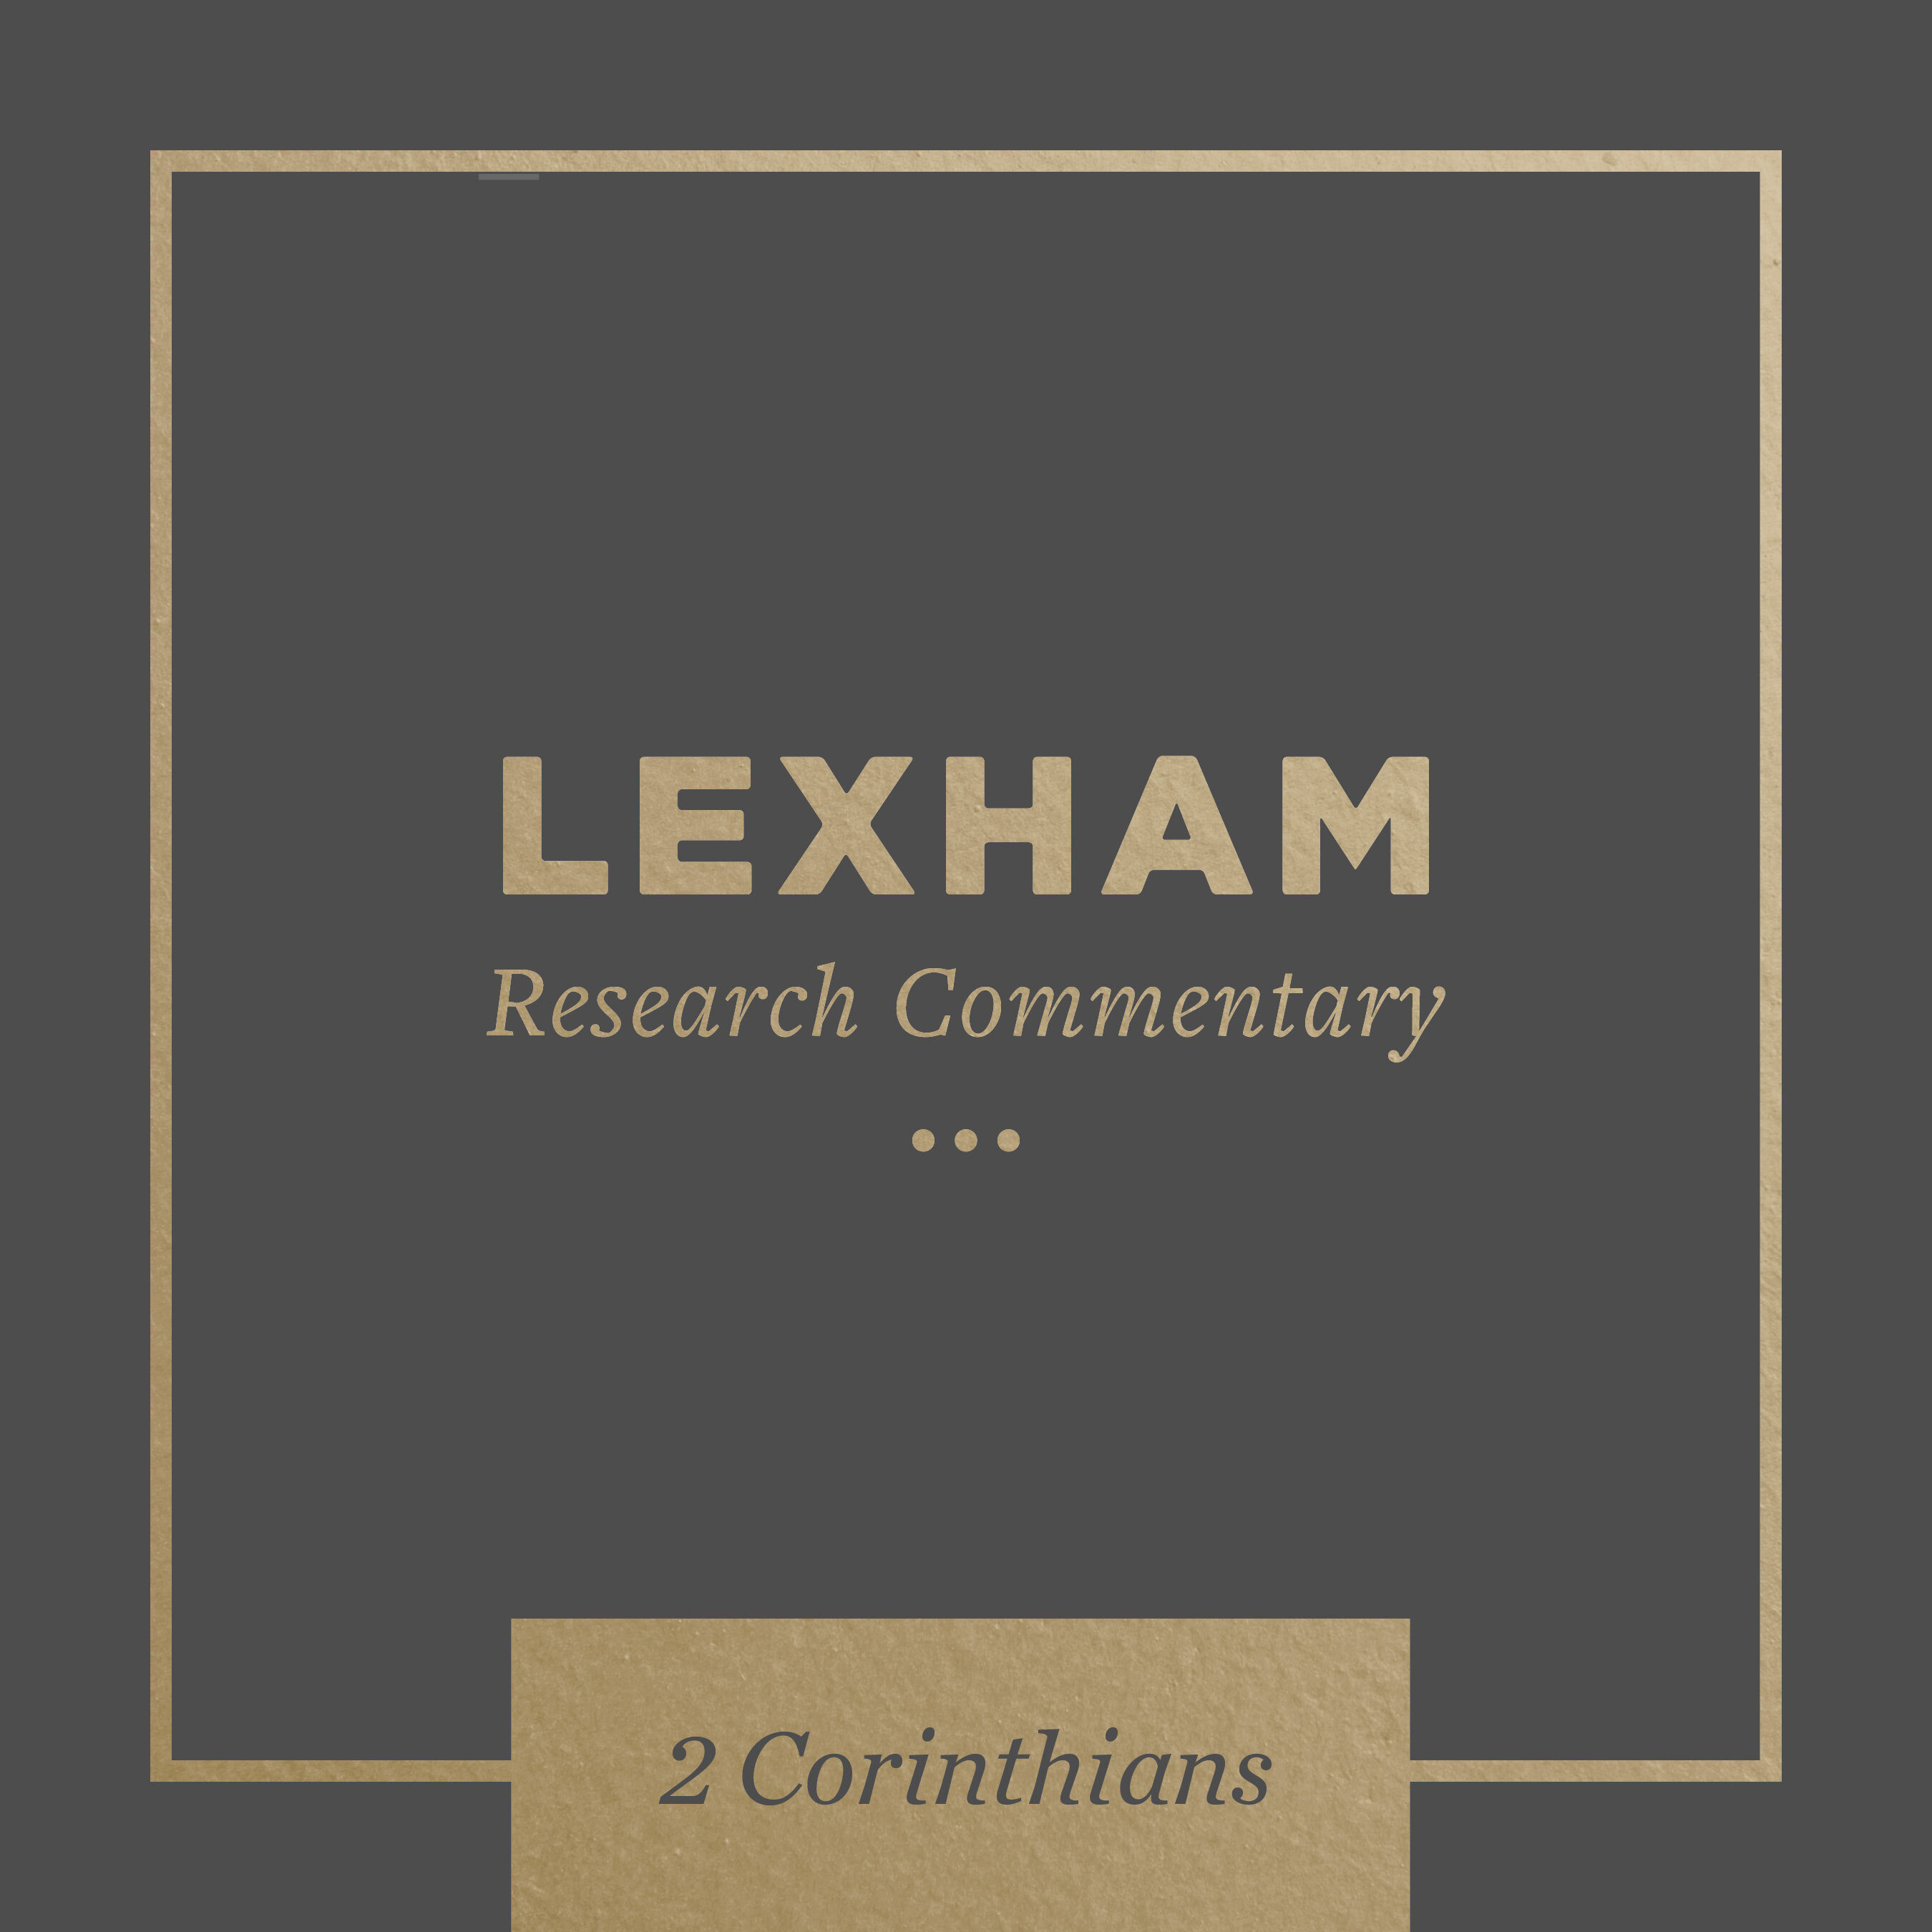 Lexham Research Commentary: 2 Corinthians